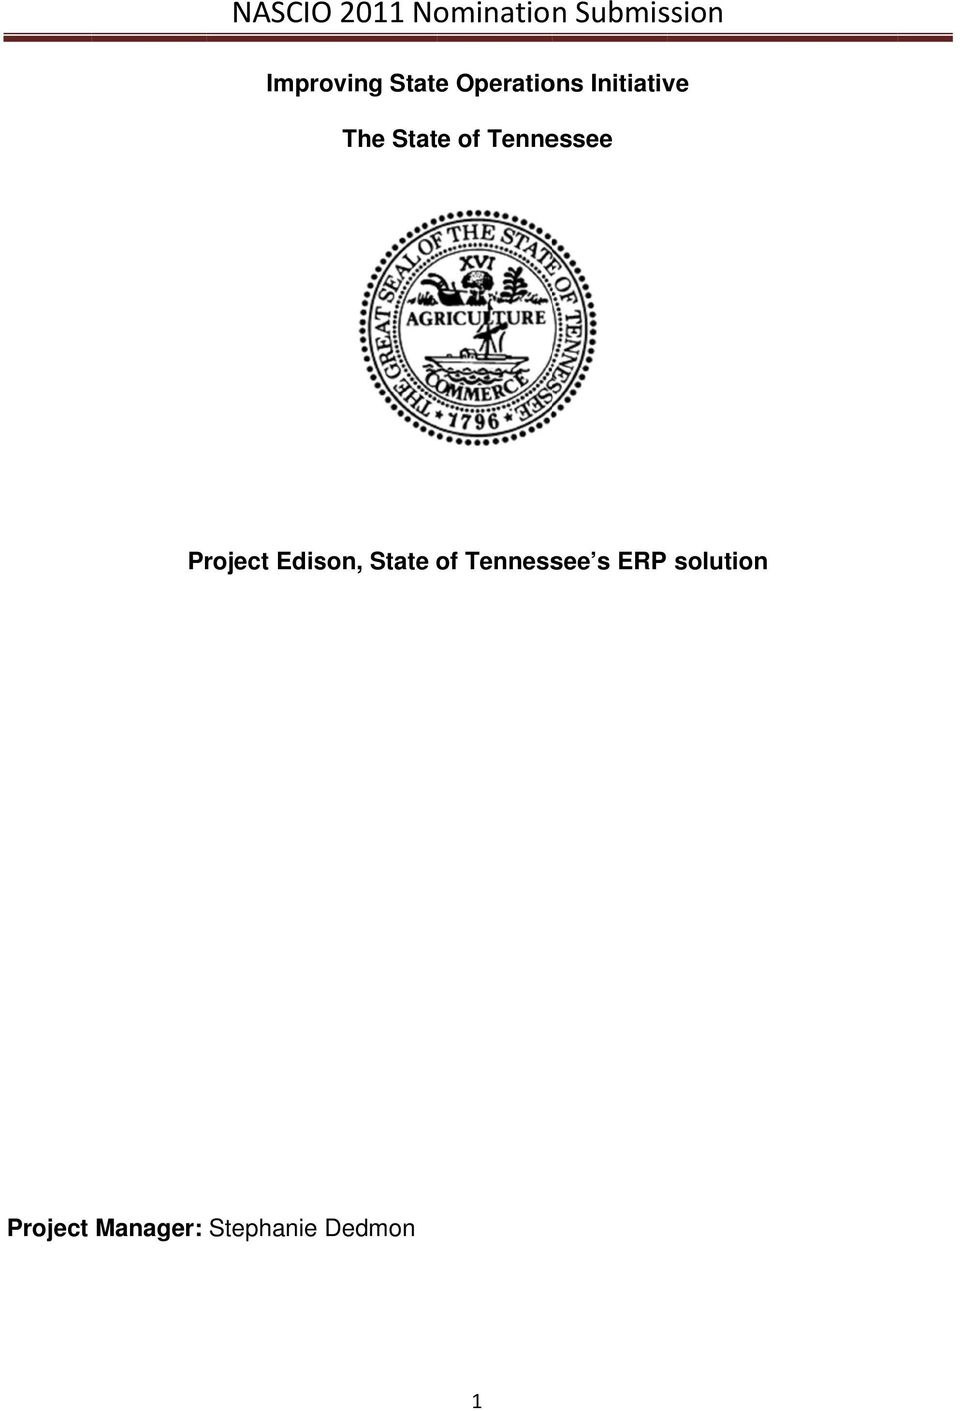 Tennessee Project Edison, State of Tennessee